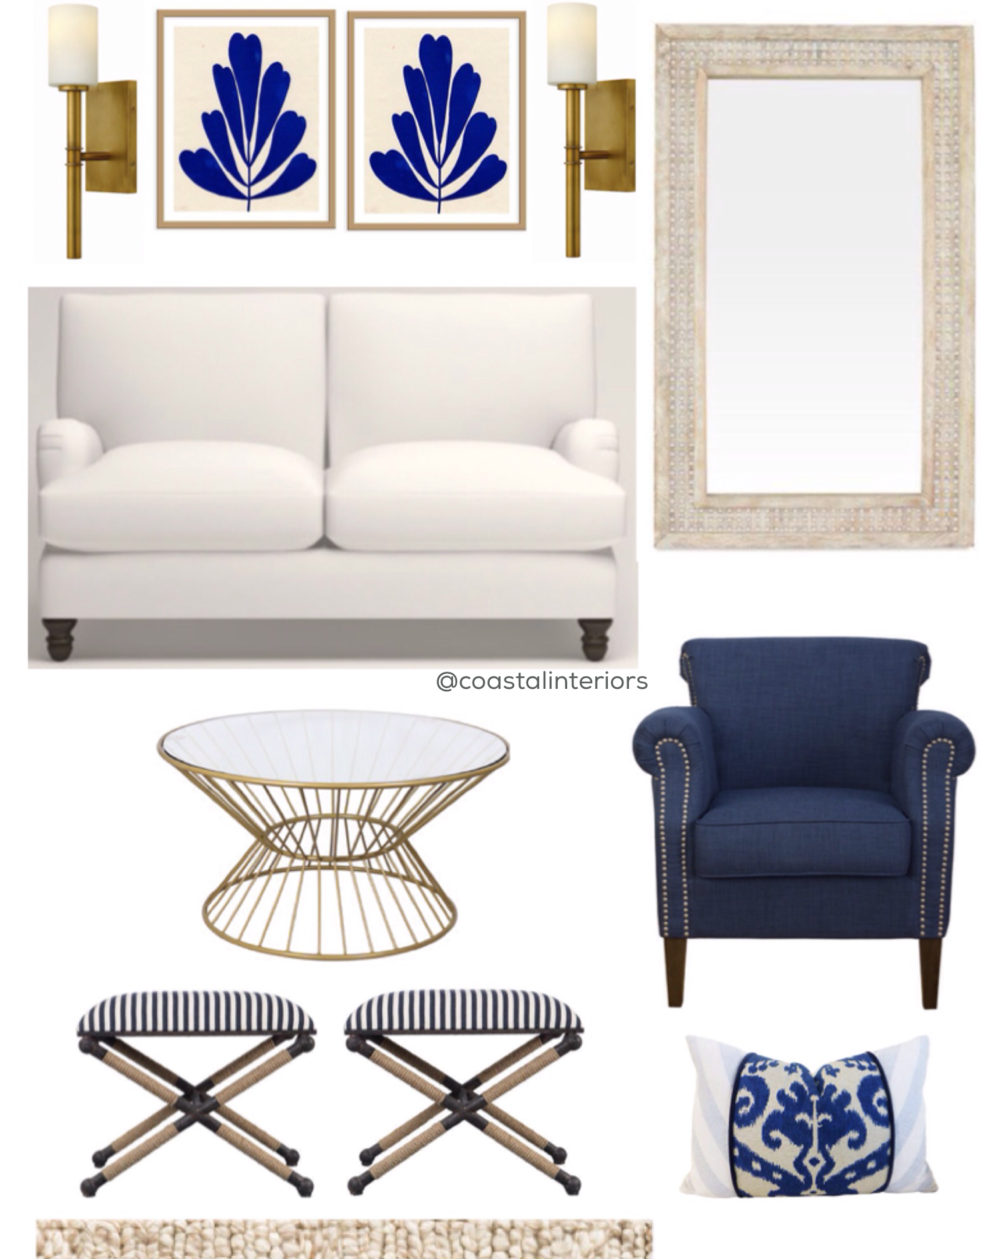 Gold Sconces / Navy Blue Wall Art / Large Floor Mirror / Navy Blue Chair  With Nailhead Trim / Navy Ikat Pillow / Striped Stools / Gold Round Coffee  Table ...